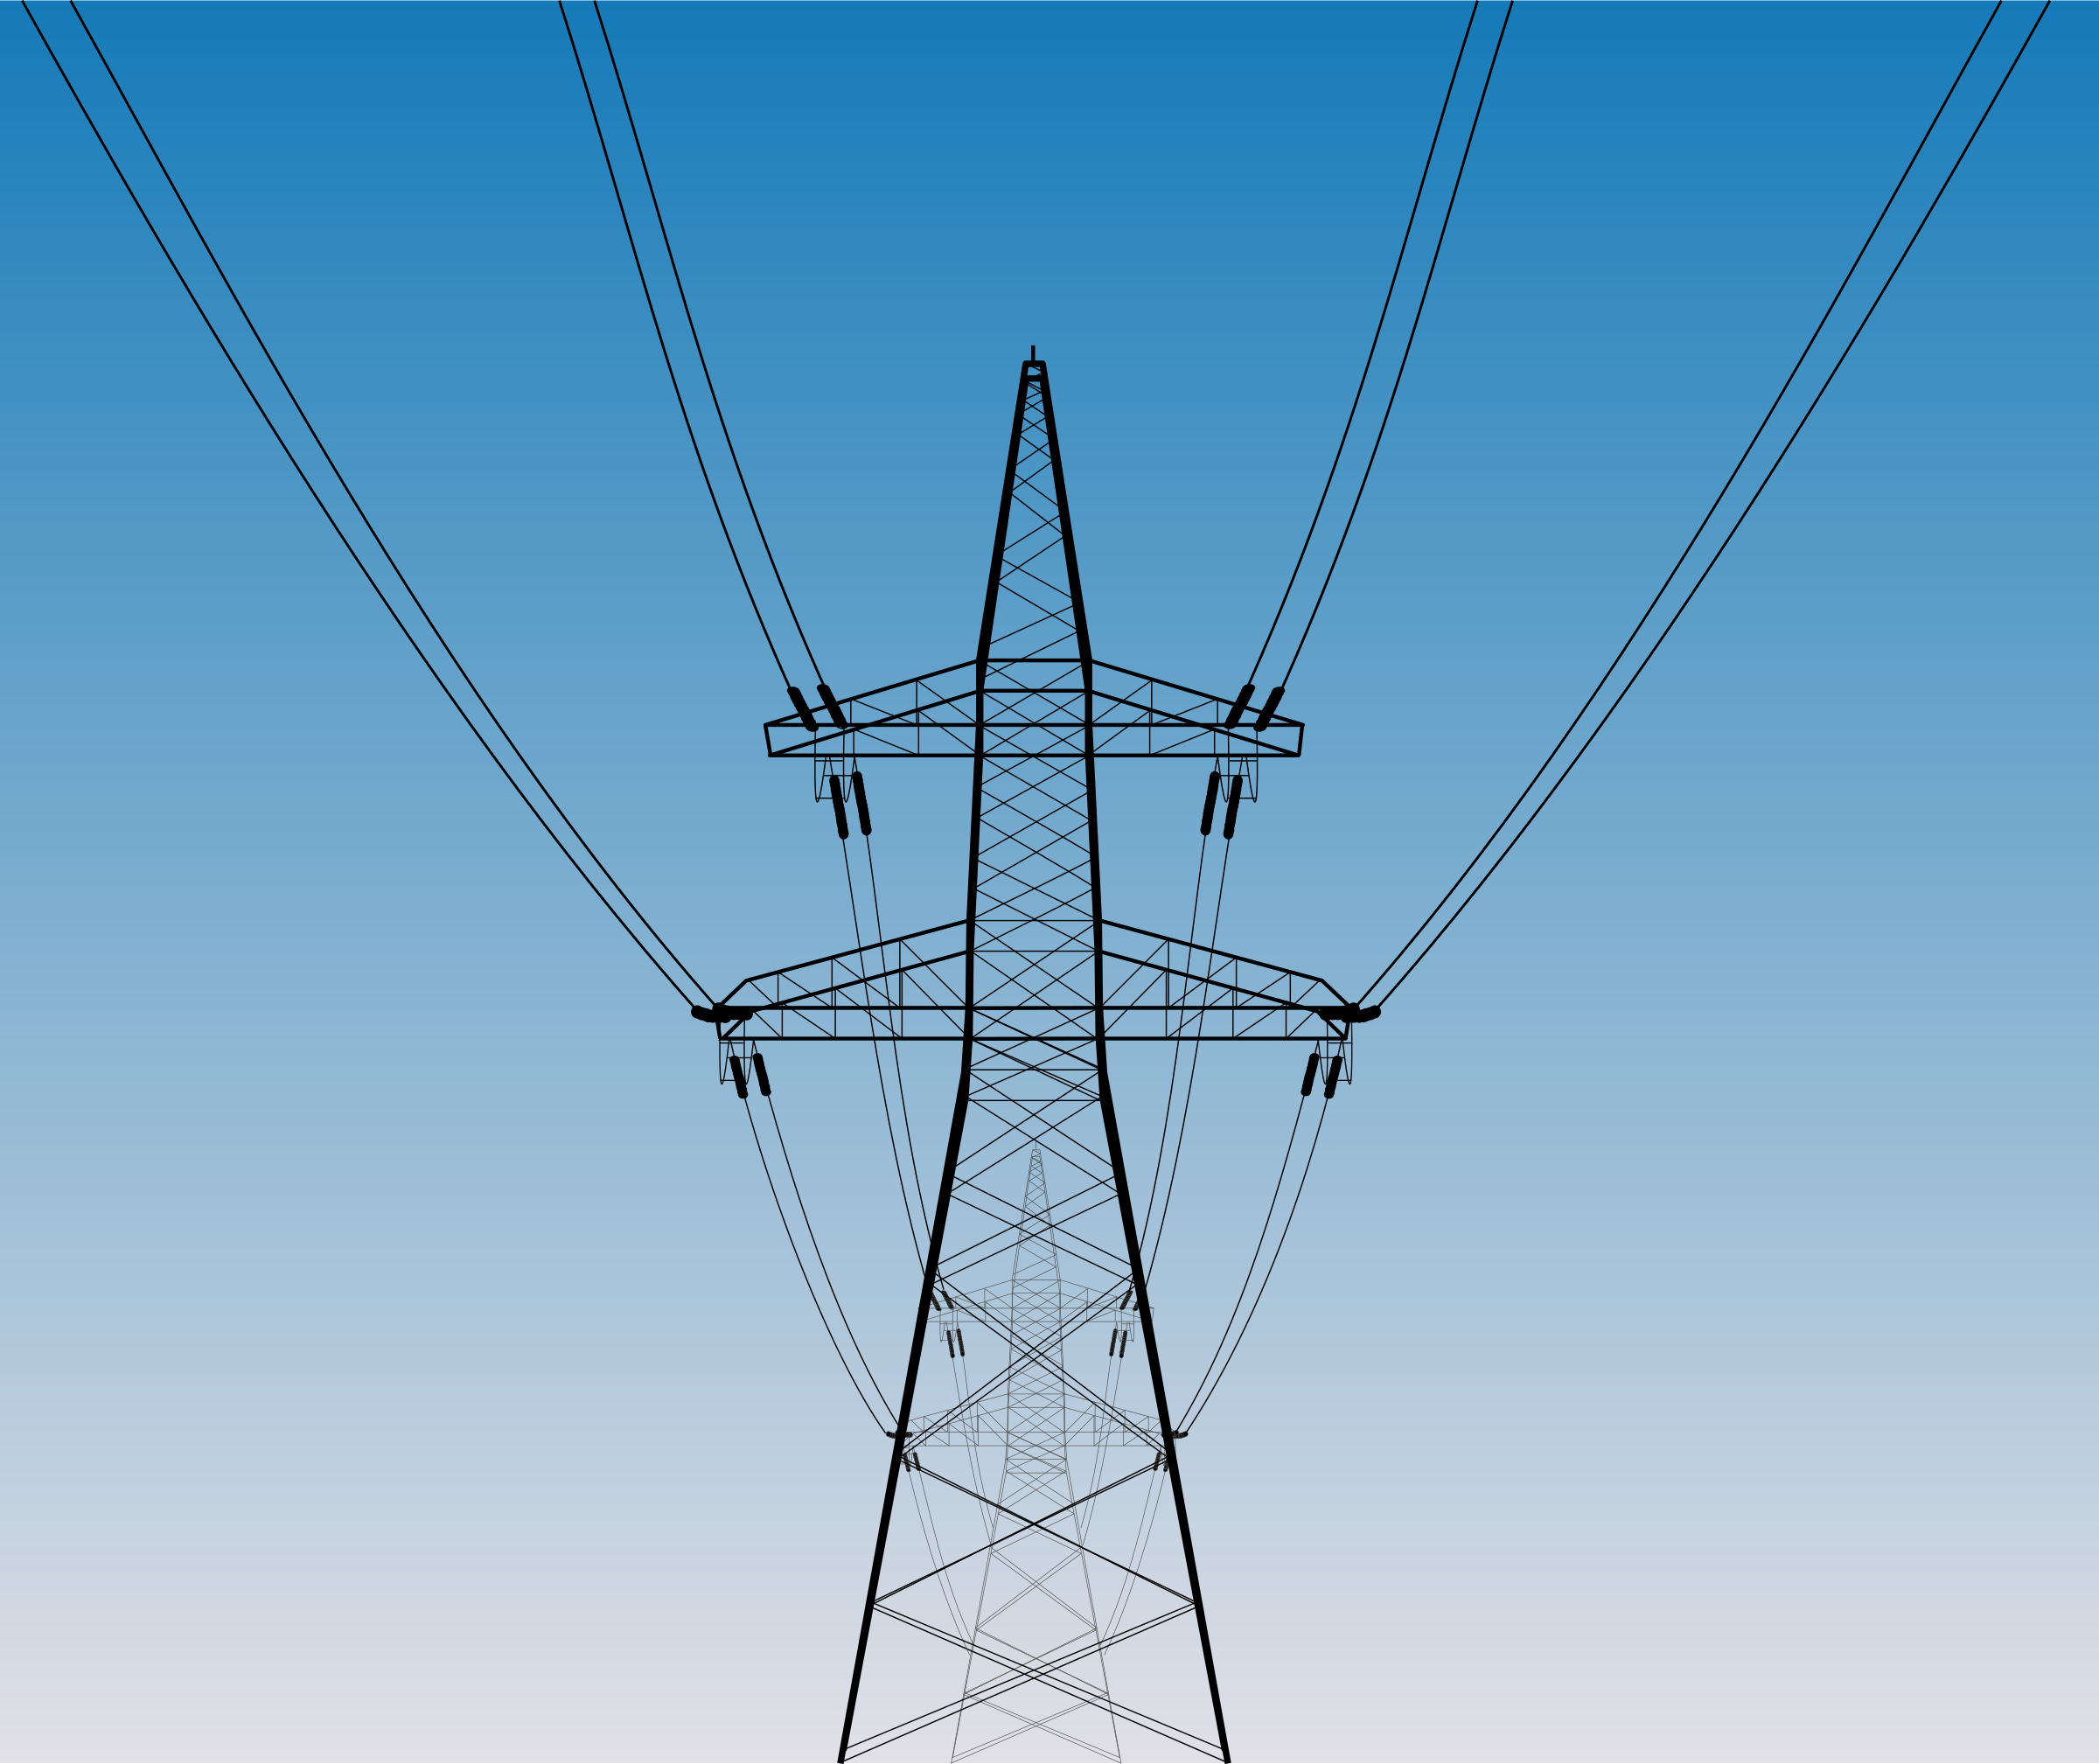 Overhead power line by Rones by rones